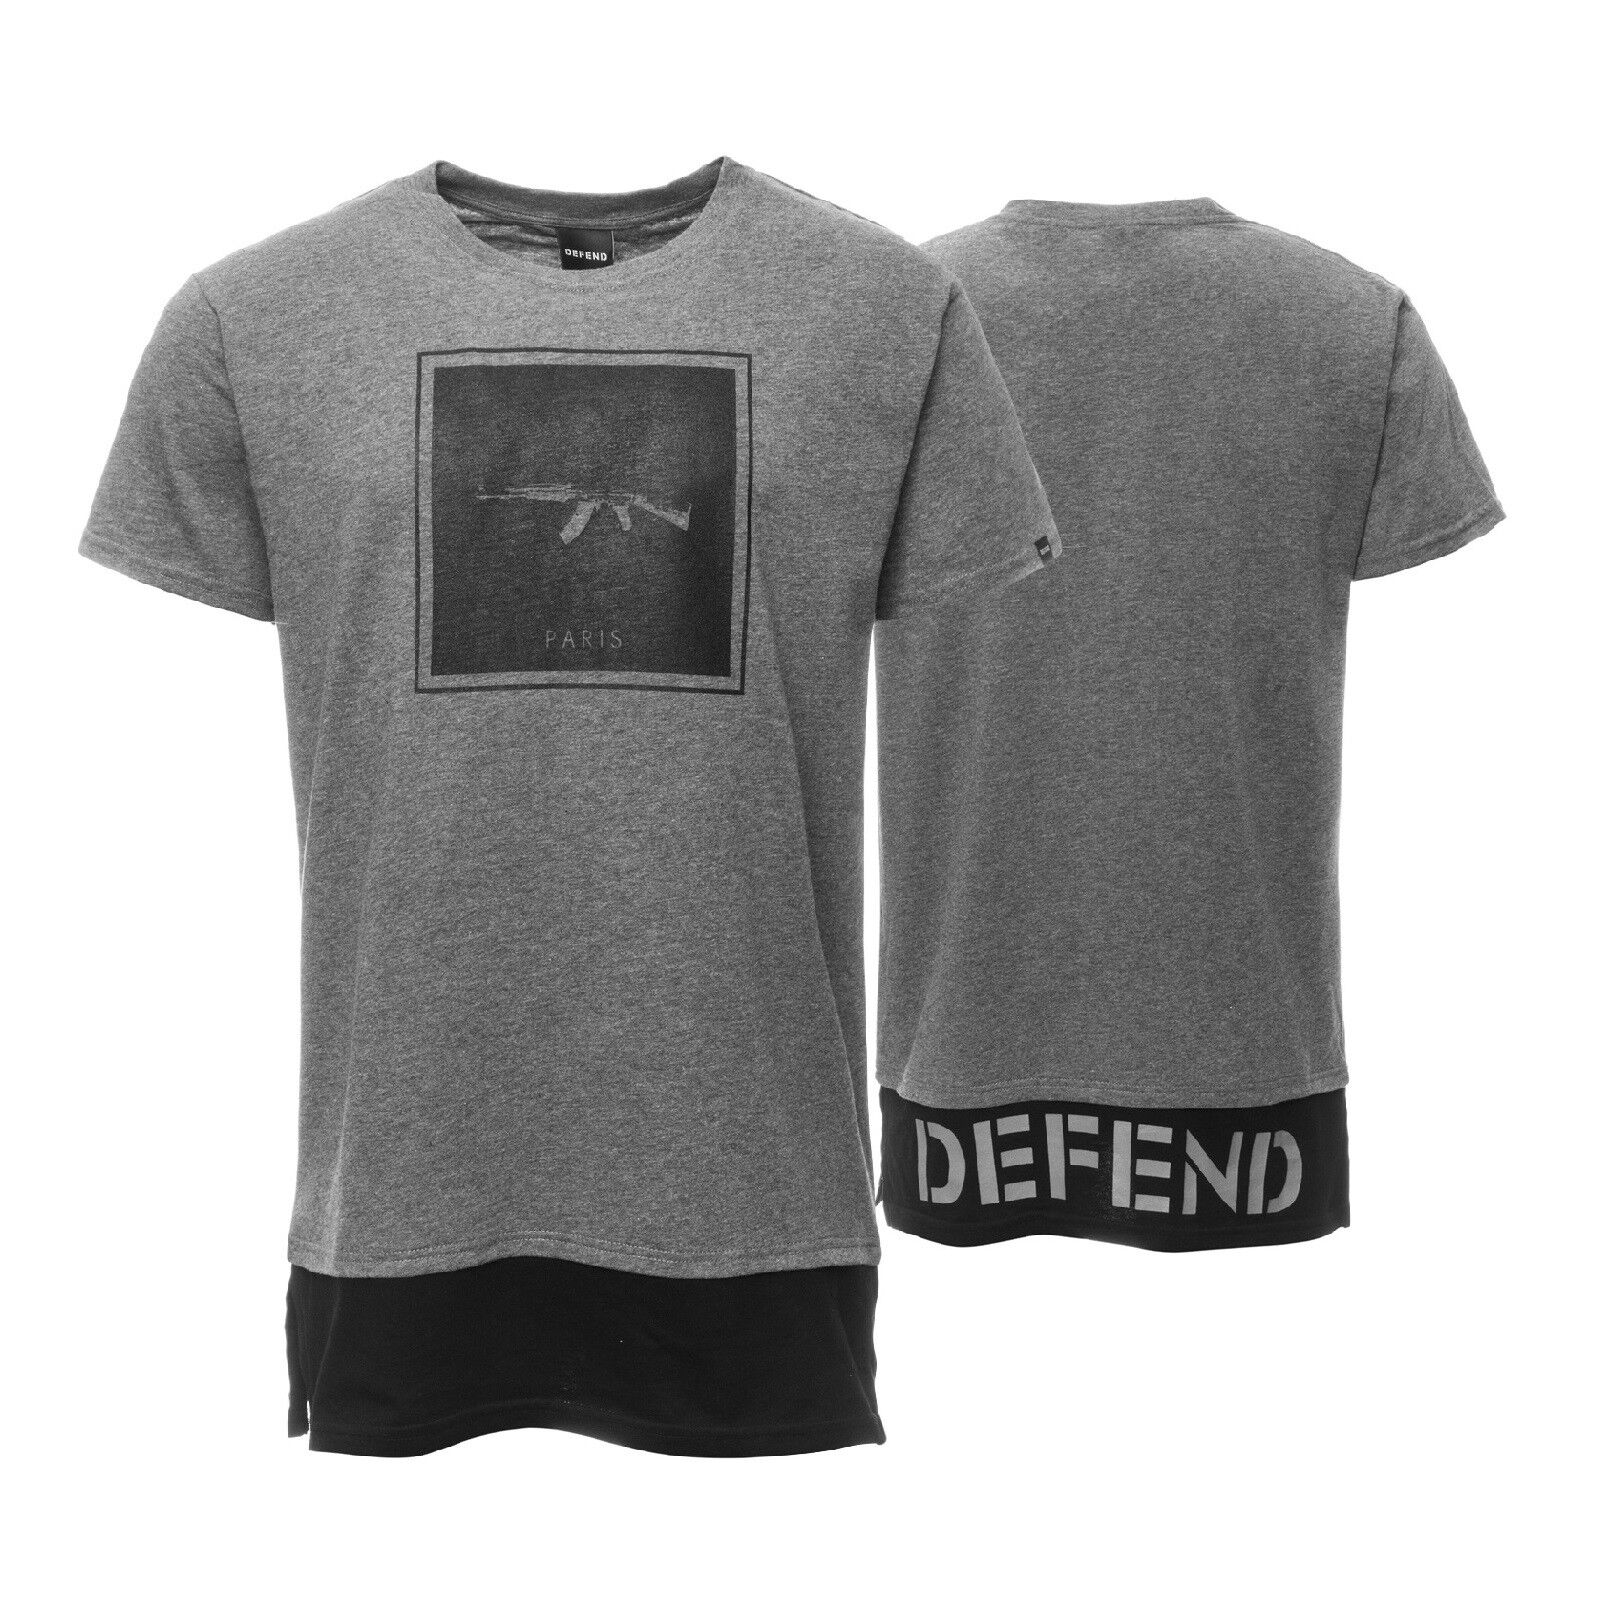 Defend Paris T-Shirt Herren Long Fit Freizeitshirt Print Layer Look Grau Schwarz